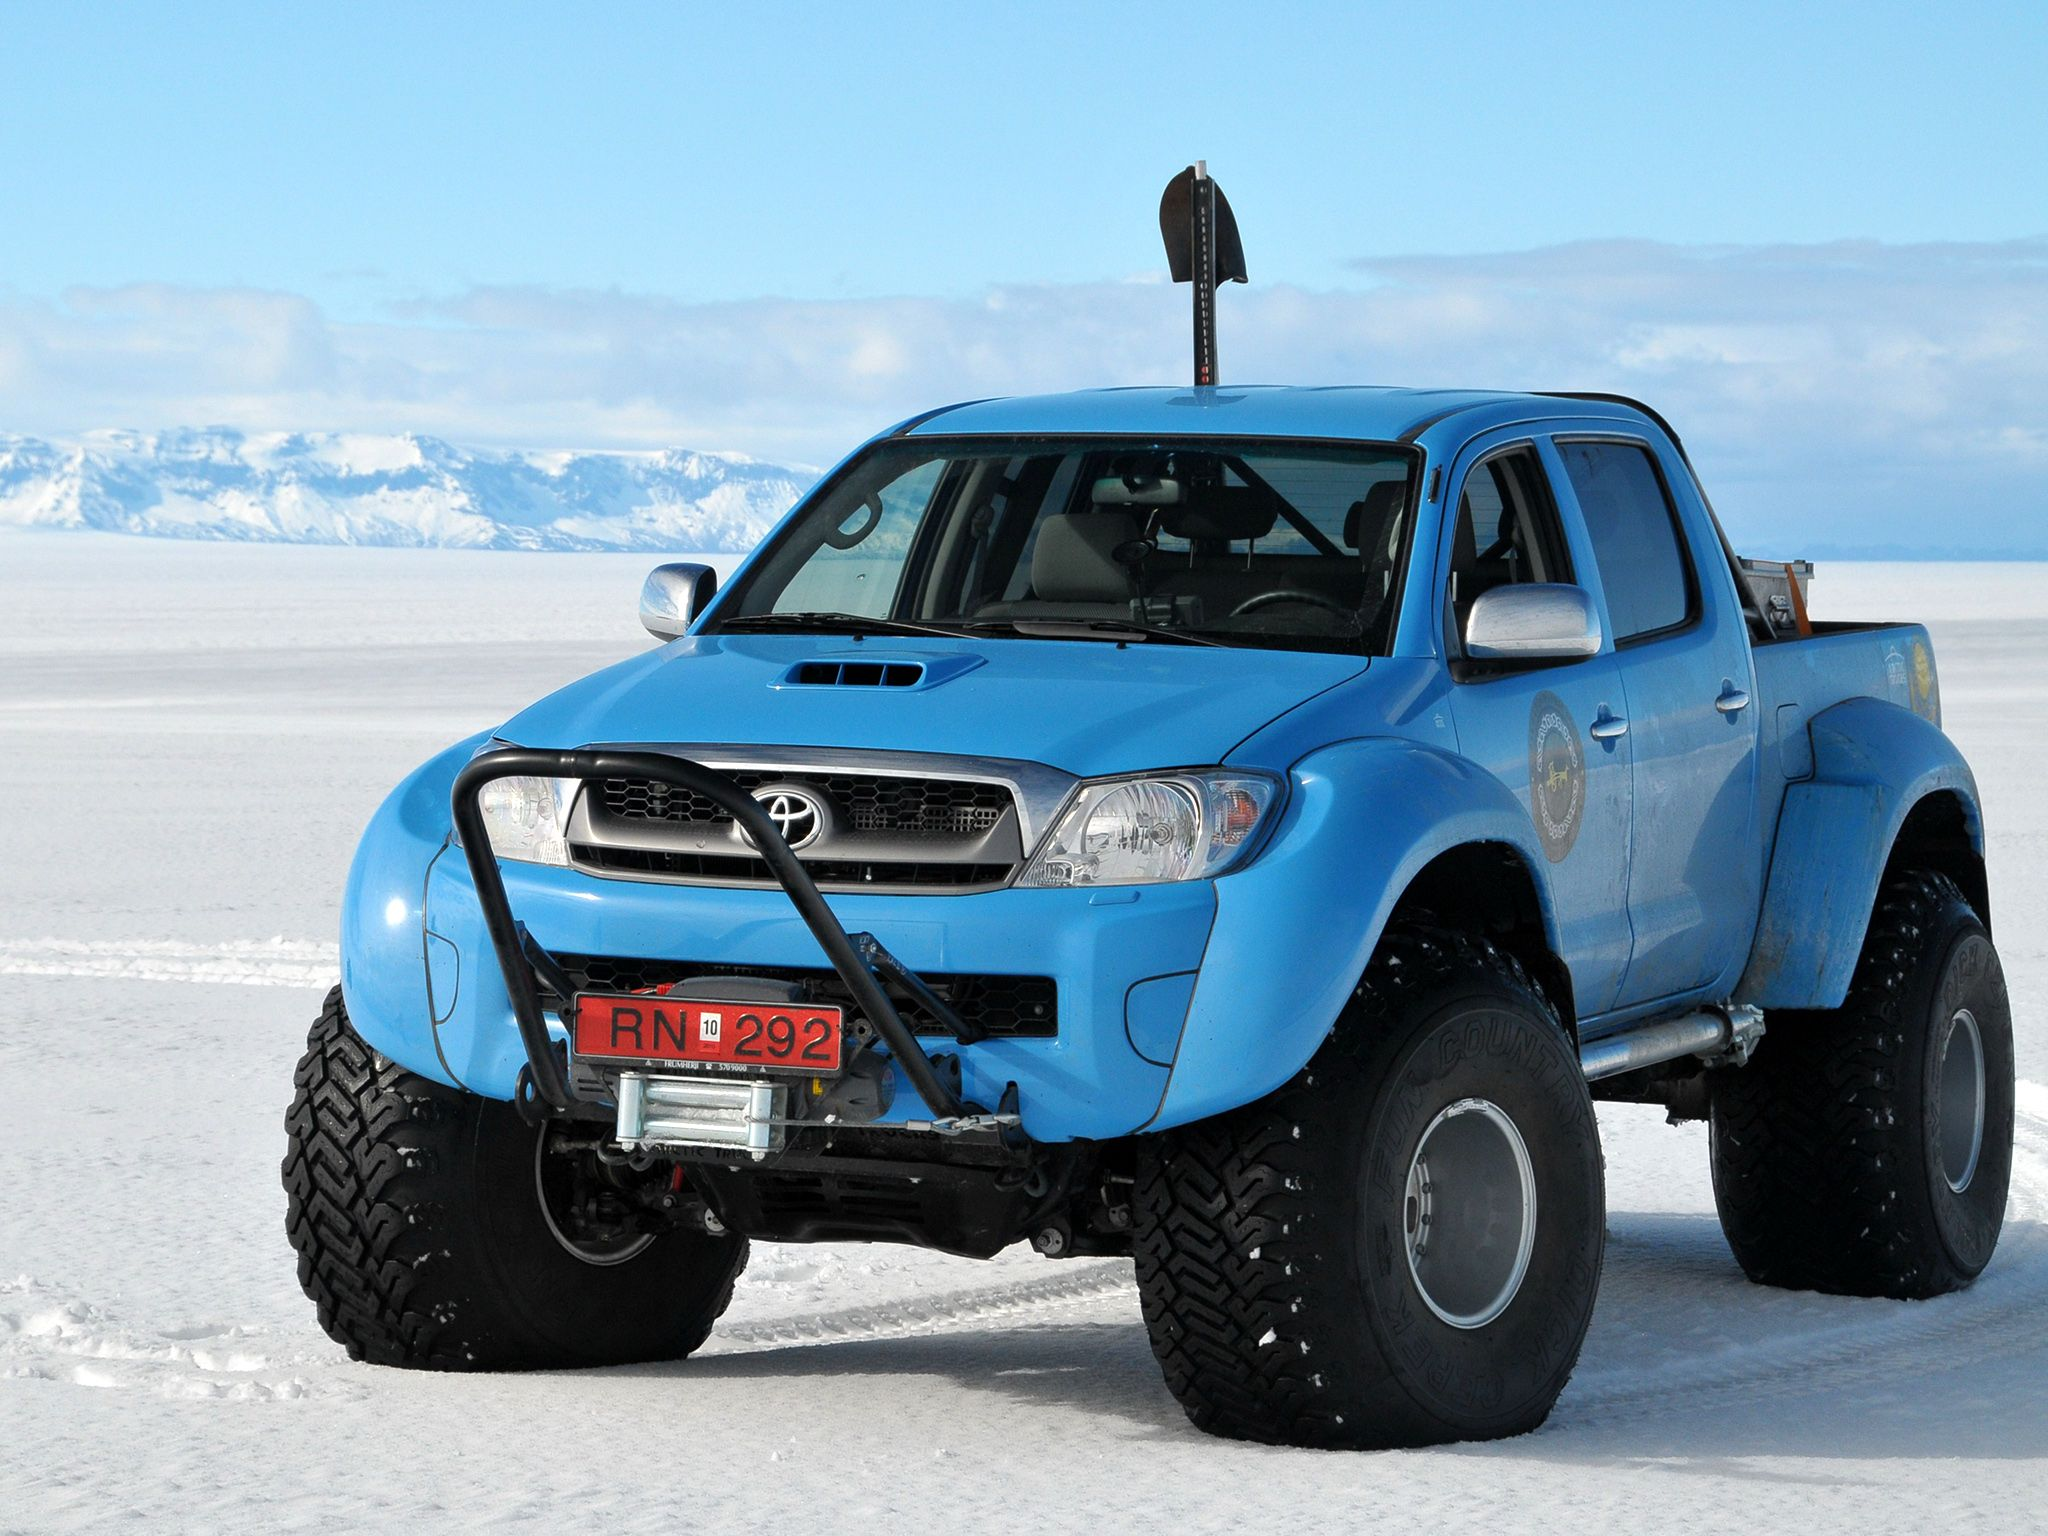 toyota hilux arctic truck rc cars pinterest trucks toyota hilux and pictures. Black Bedroom Furniture Sets. Home Design Ideas